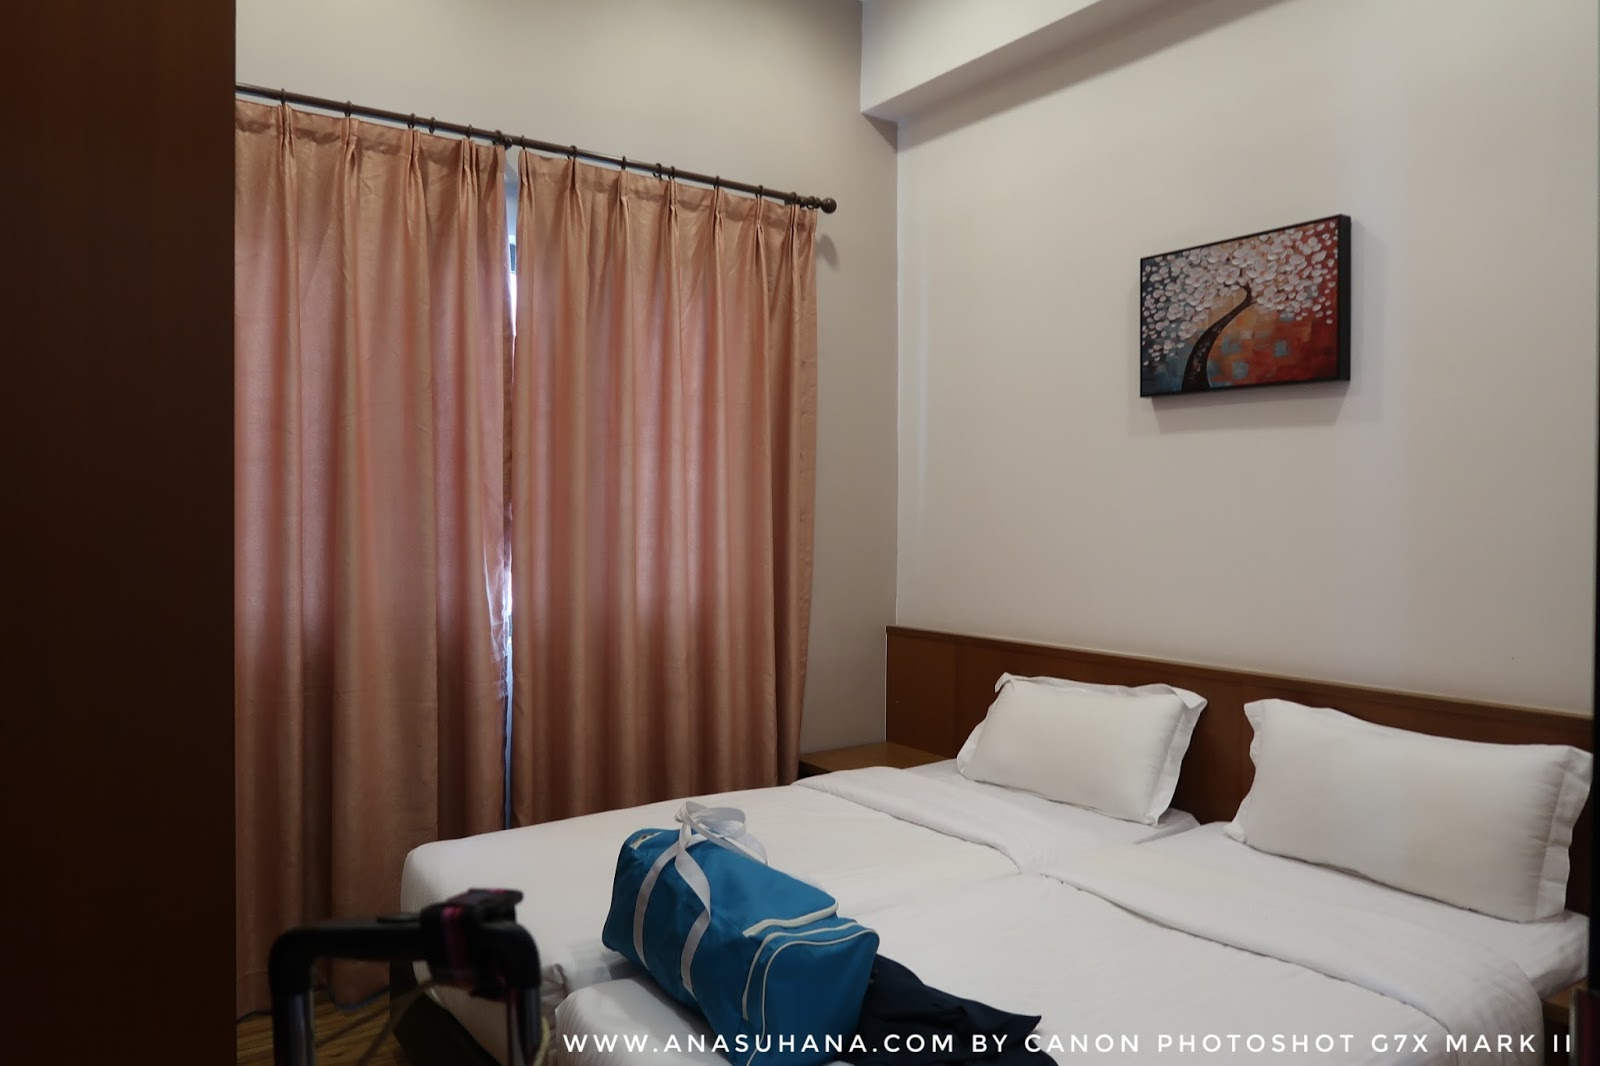 Hotel Review - The Retreat Aranda Nova